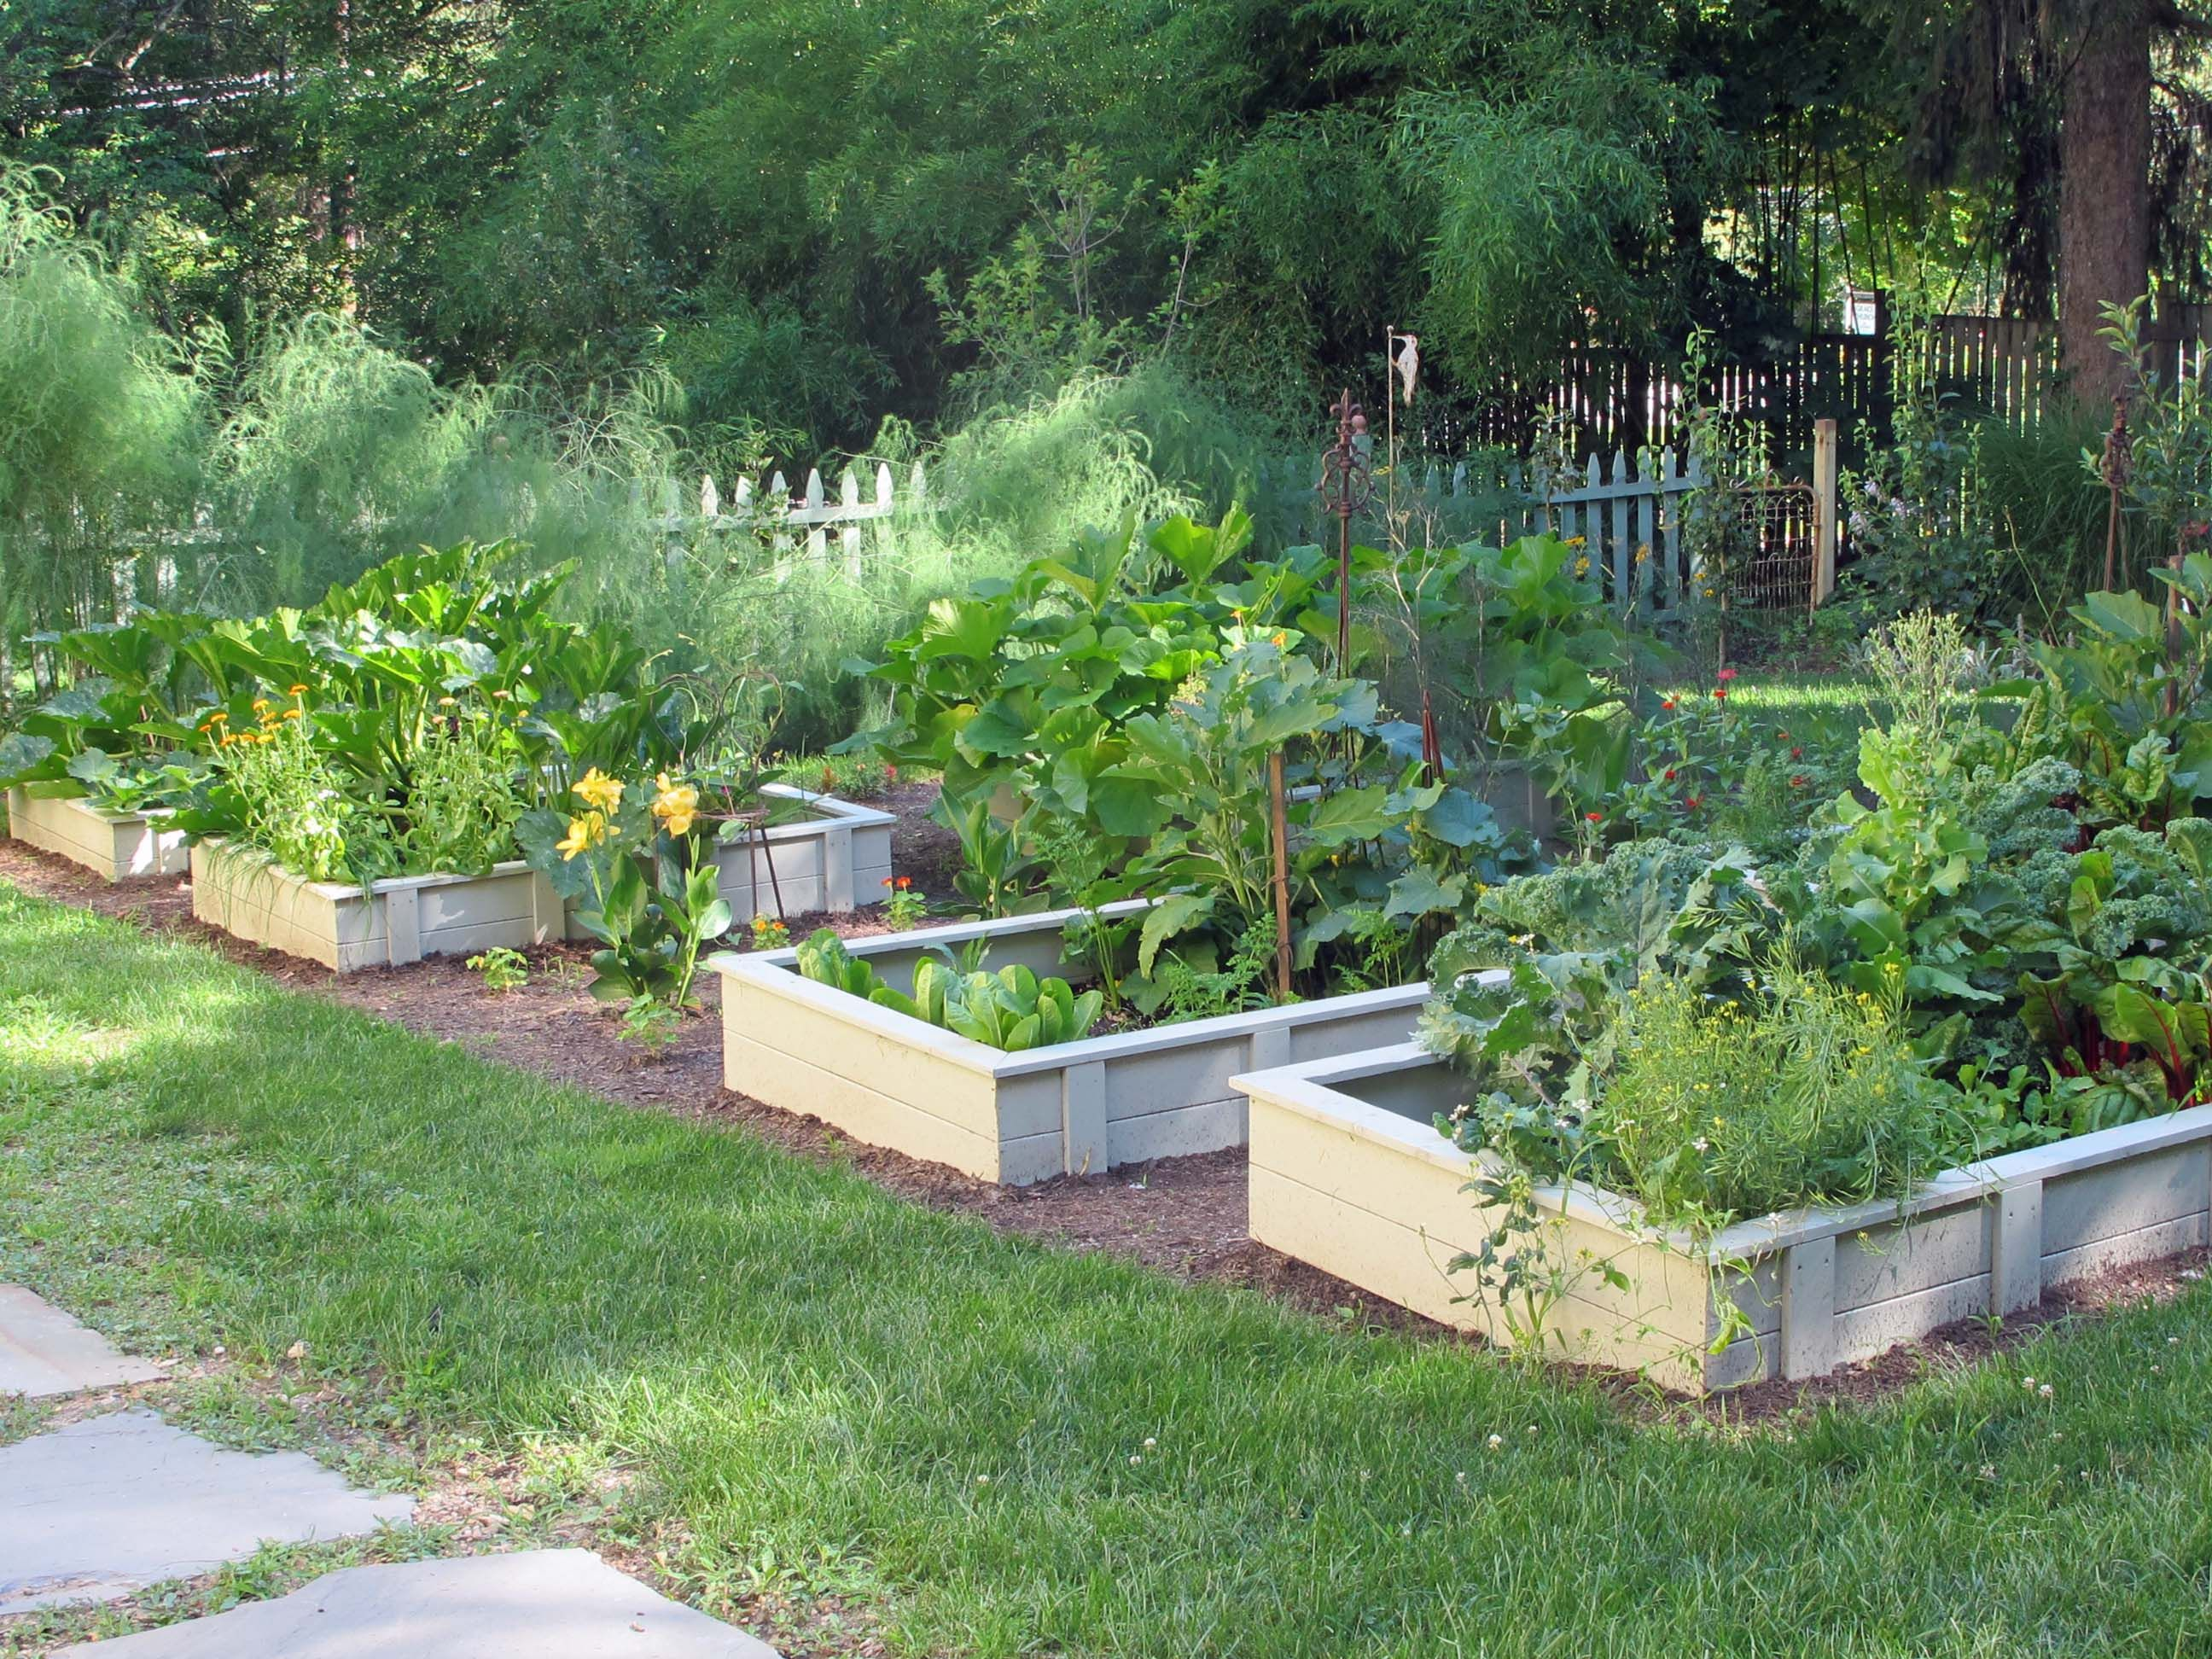 Raised vegetable garden design ideas veg garden beds for Raised veggie garden designs